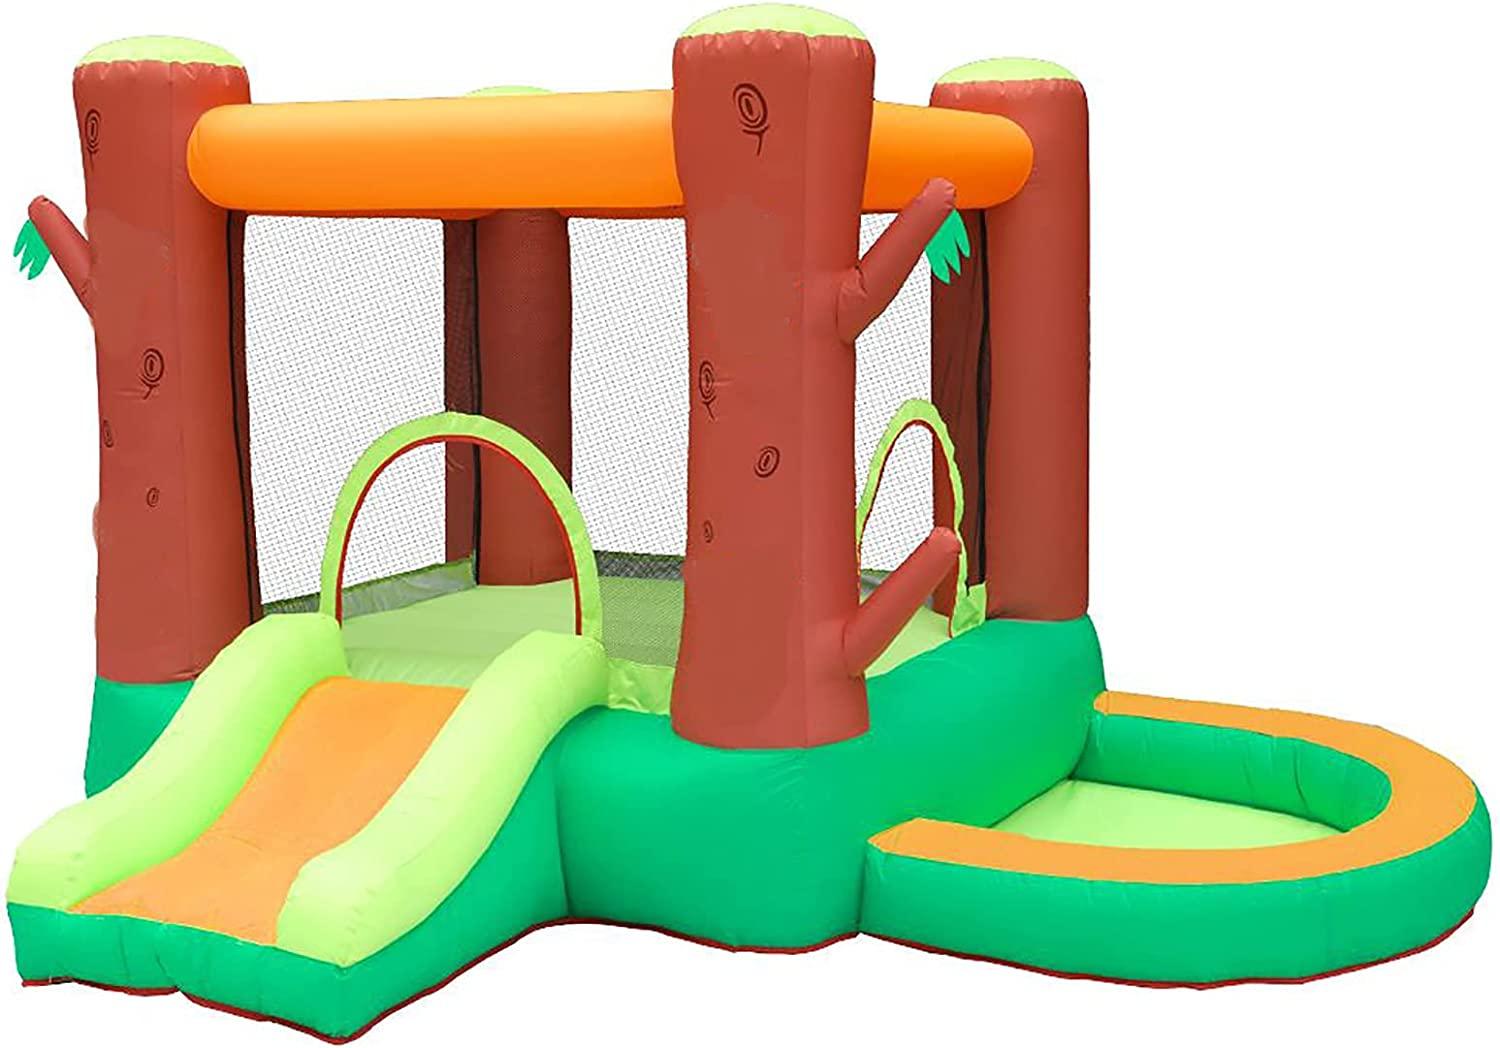 70% OFF Outlet NSZJWD Bouncy Castle for Kids Jump Outdoor Inflatable Product Bouncers